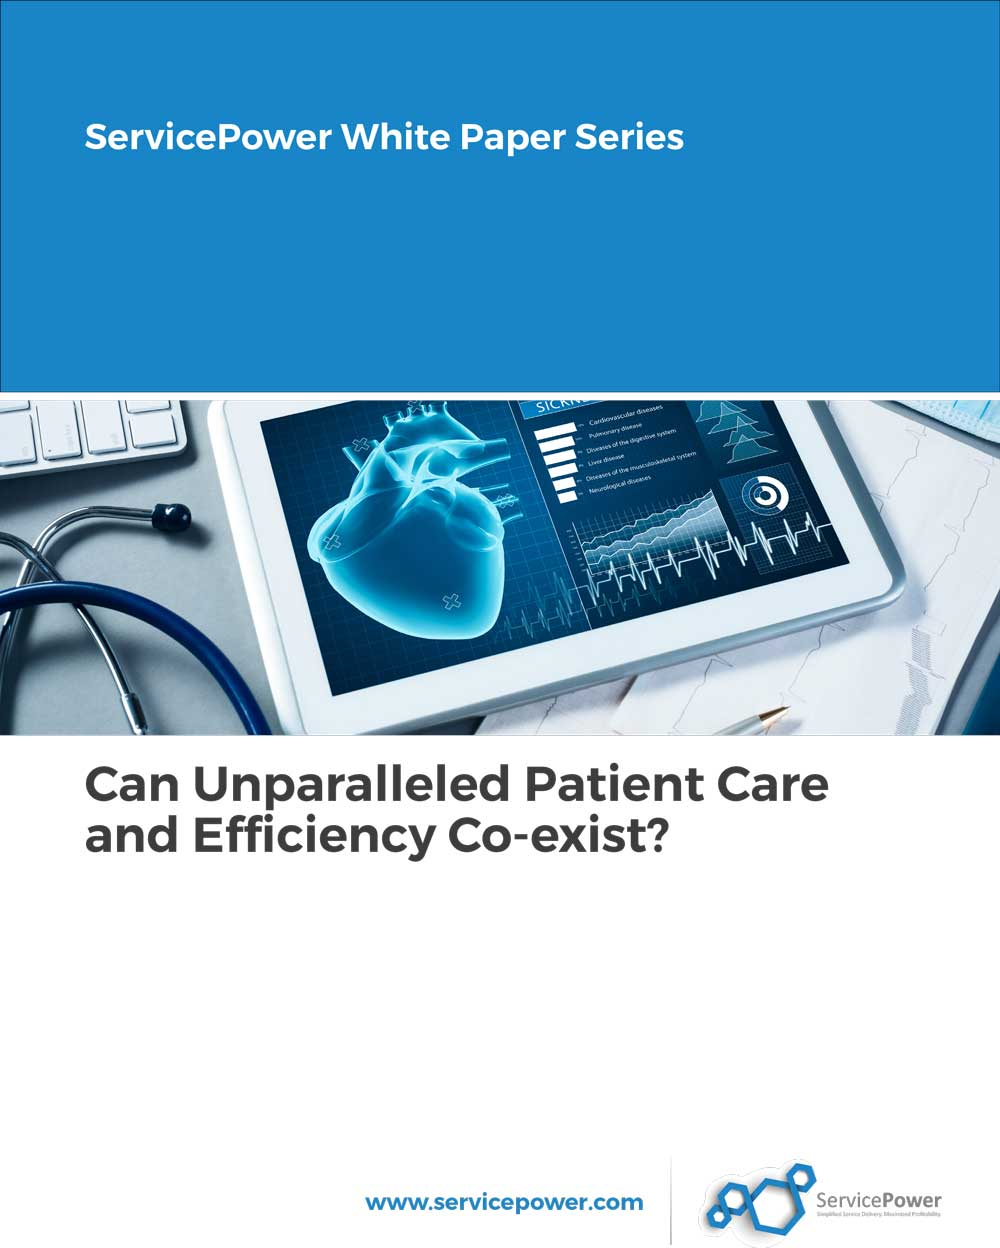 Download: Can Unparalleled Patient Care and Efficiency Co-exist?